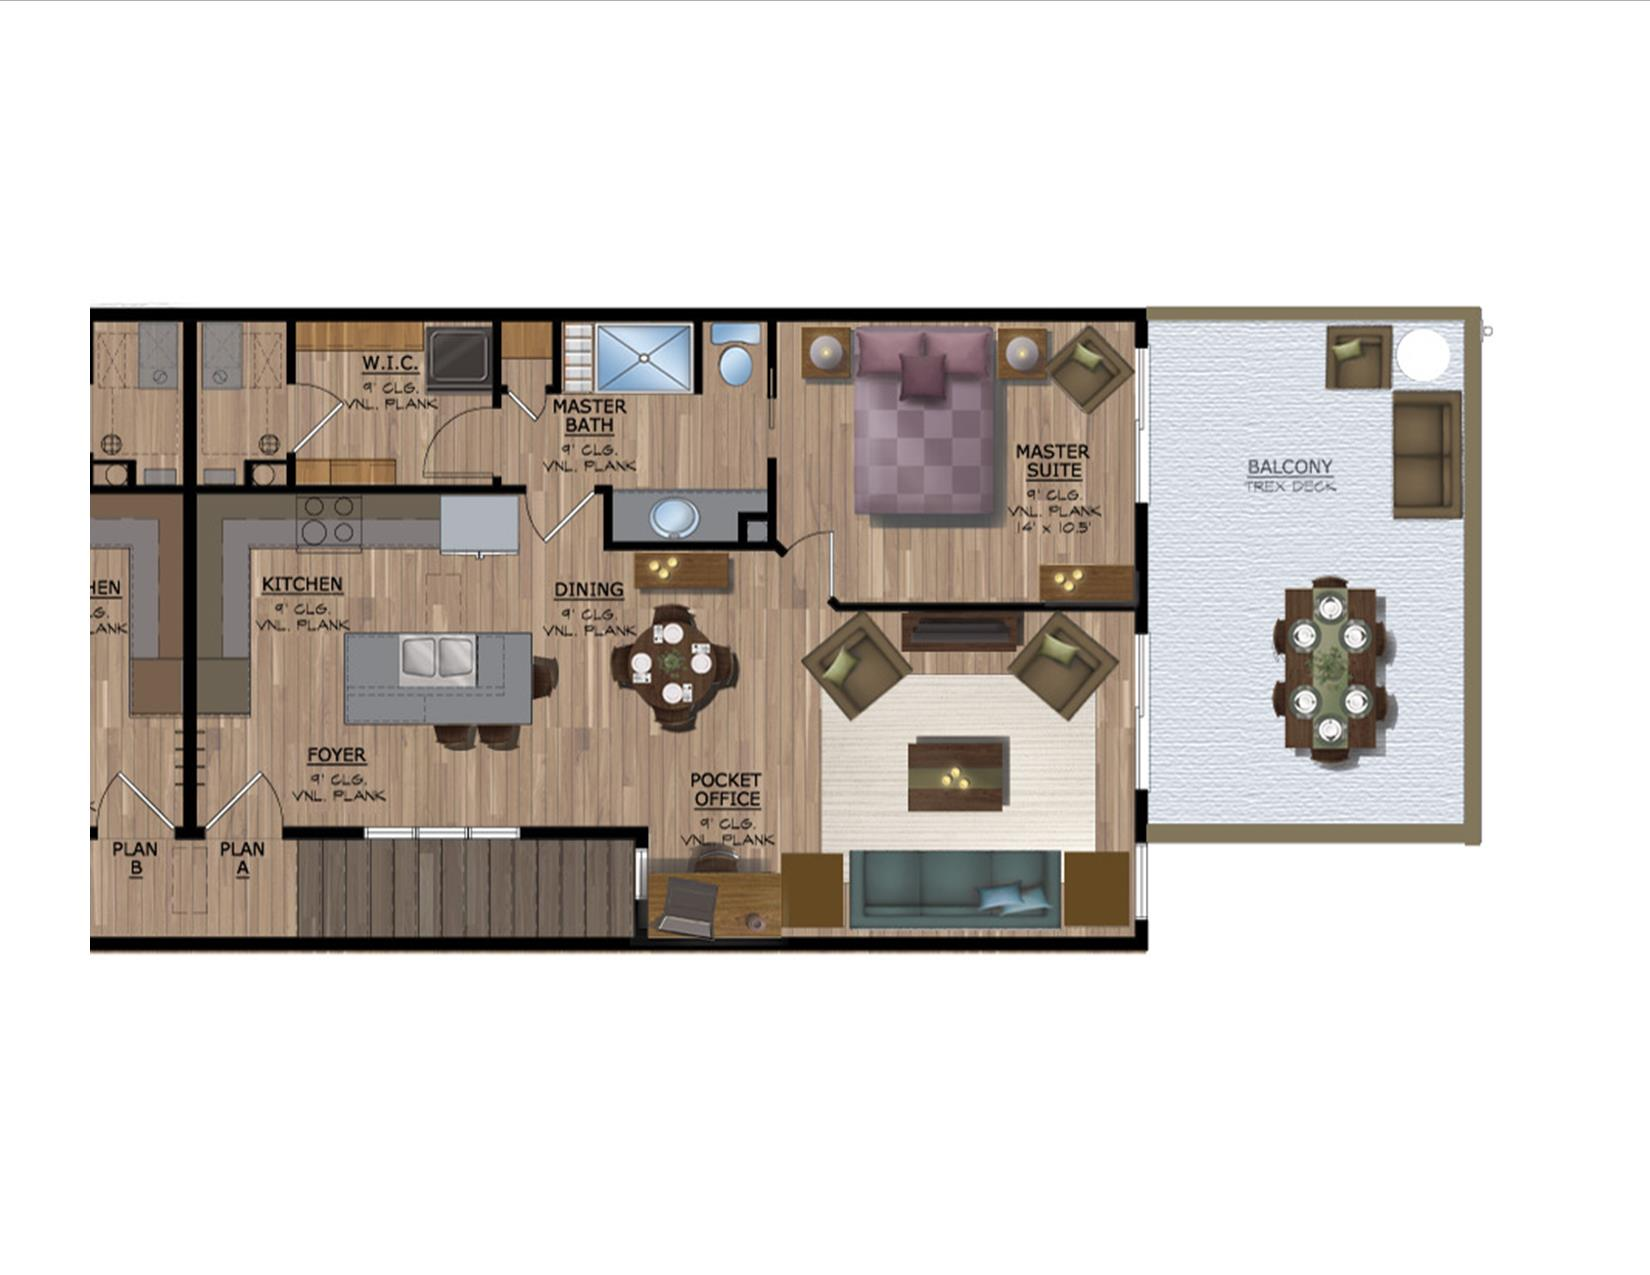 Unit A rendered floorplan